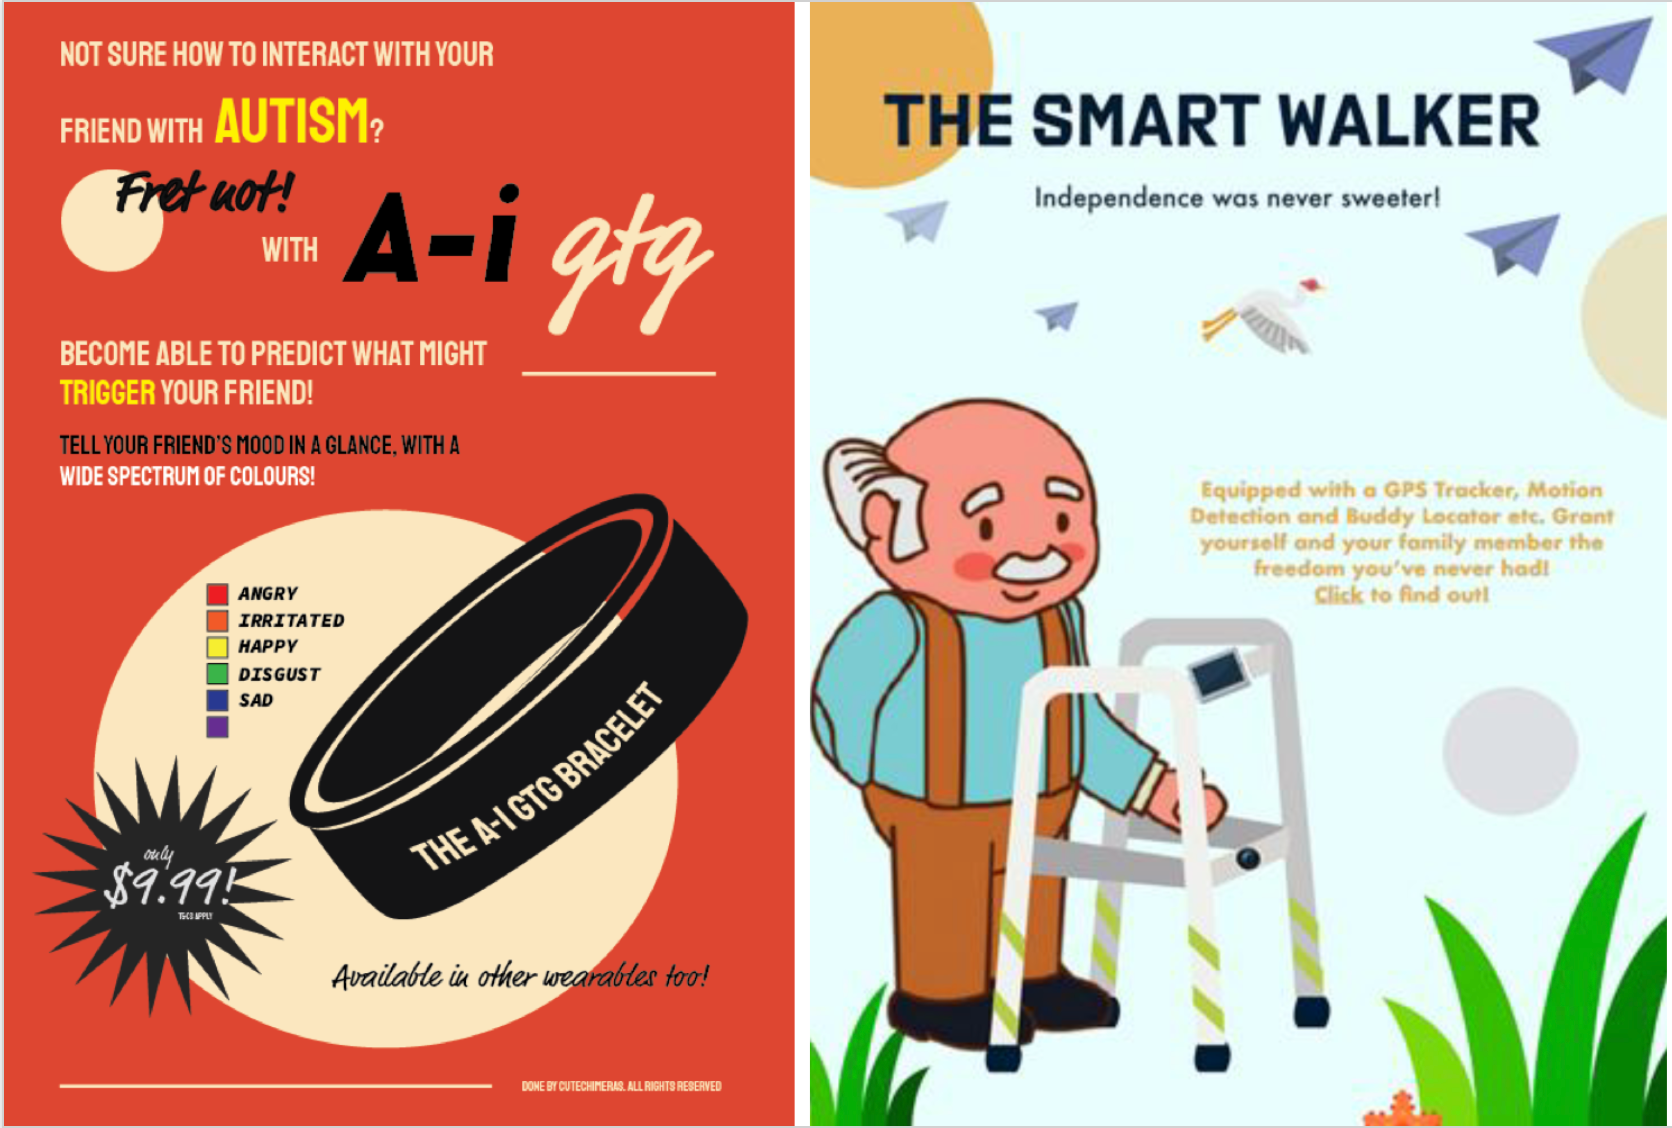 """Two ad mock-ups that visualize students' AI concepts. One shows a bracelet and says """"Not sure how to interact with your friend with autism? Fret not! with A-I GTG become able to predict what might trigger your friend! Tell your friend's mood in a glance with a wide spectrum of colors!"""" The other shows an elderly man with a walker and says """"The smart walker. Independence was never sweeter! Equipped with a GPS tracker, motion detection, and buddy locator etc."""""""